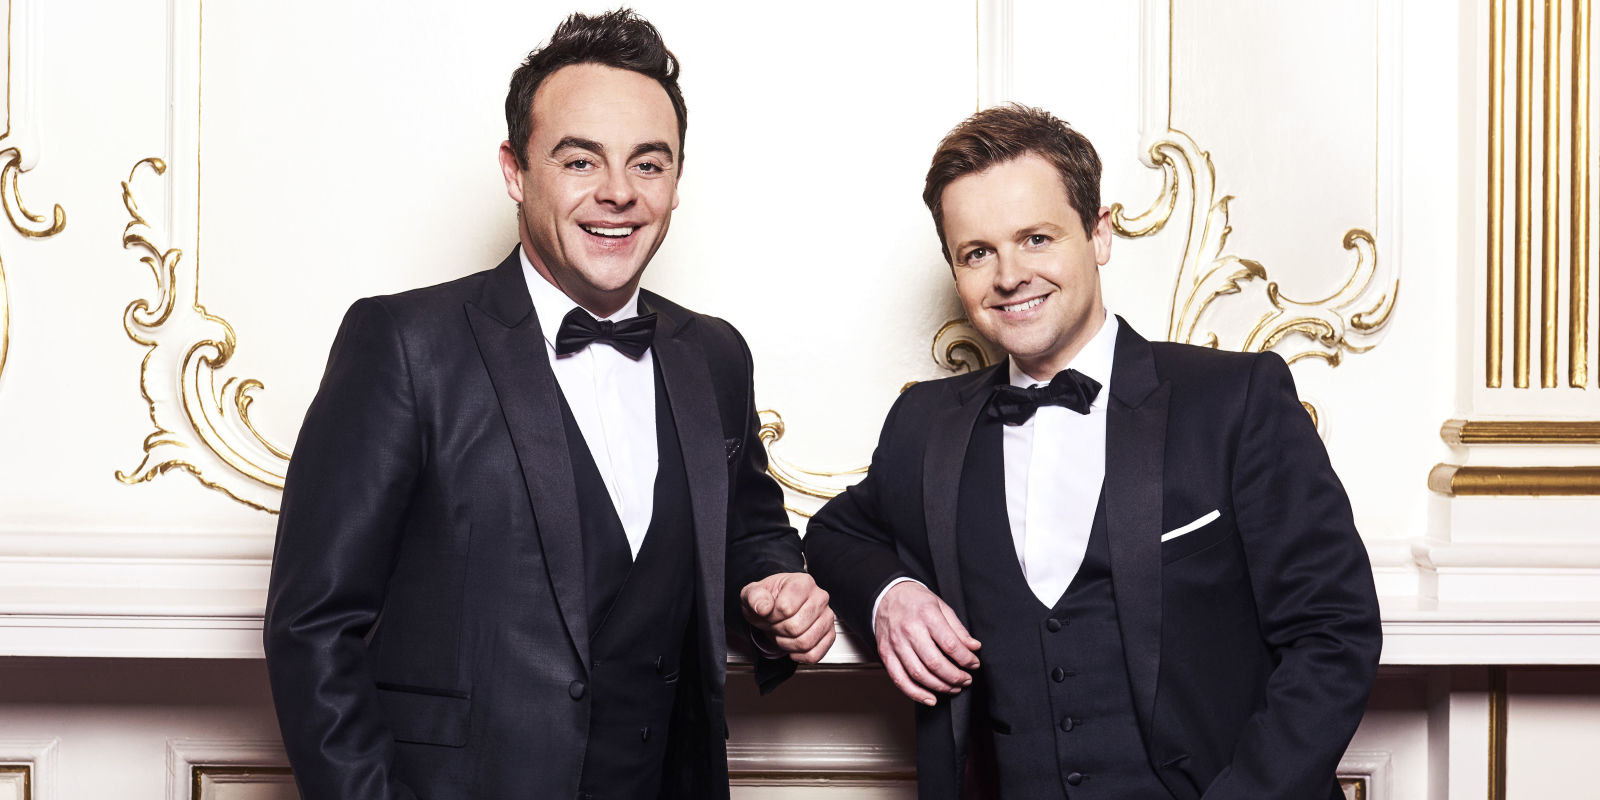 13 Little-Known Facts About Ant And Dec That Make Us Love Them Even More